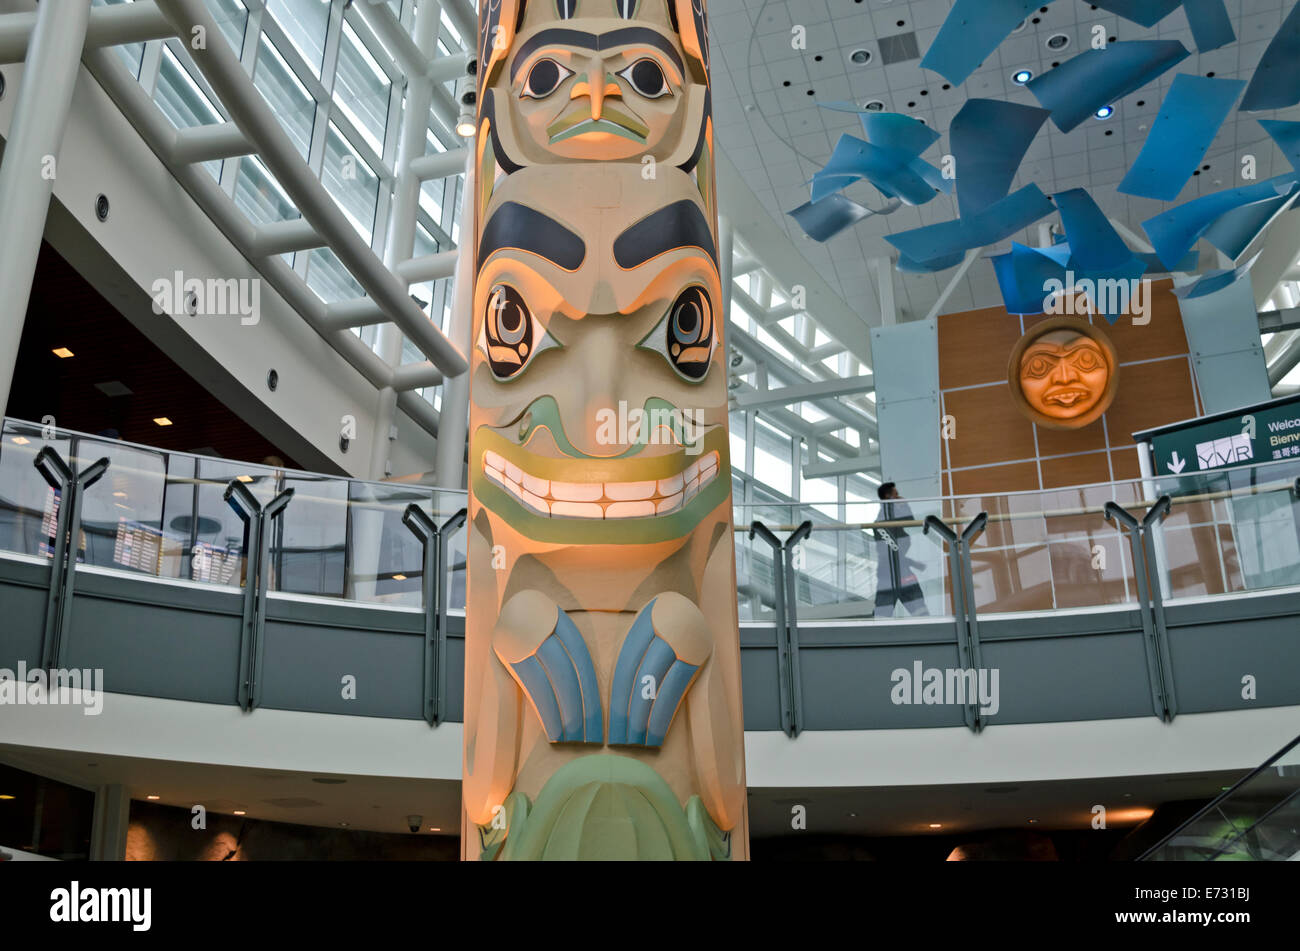 Beautiful first nations totem pole artwork greets visitors in the Vancouver International Airport, YVR. In the Graham - Stock Image